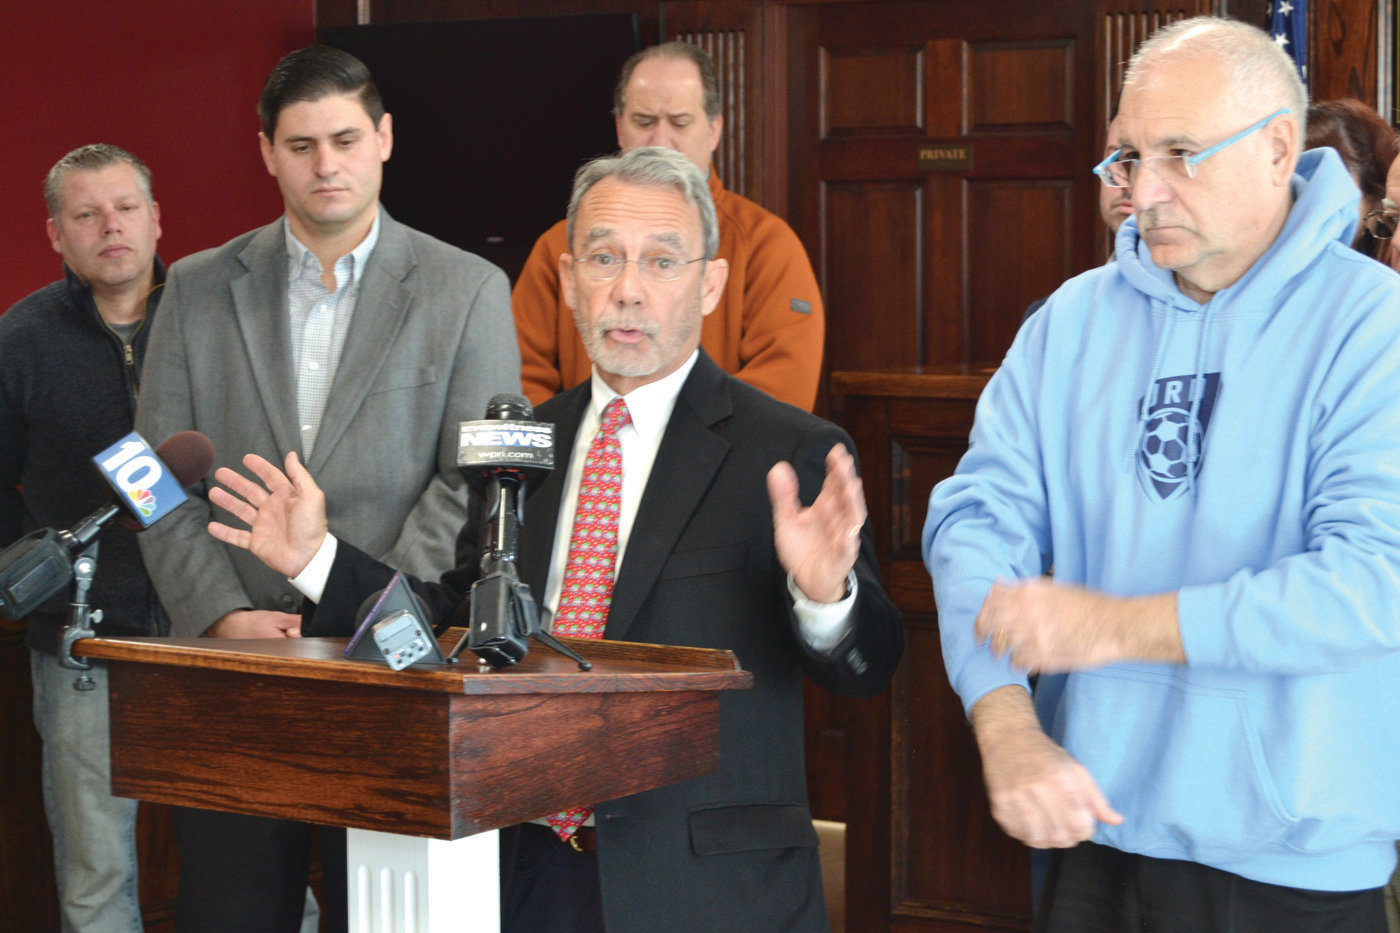 CASE CLOSED:  Johnston Town Solicitor William Conley explained the steps he took to reach a settlement with National Grid during a press conference last week.